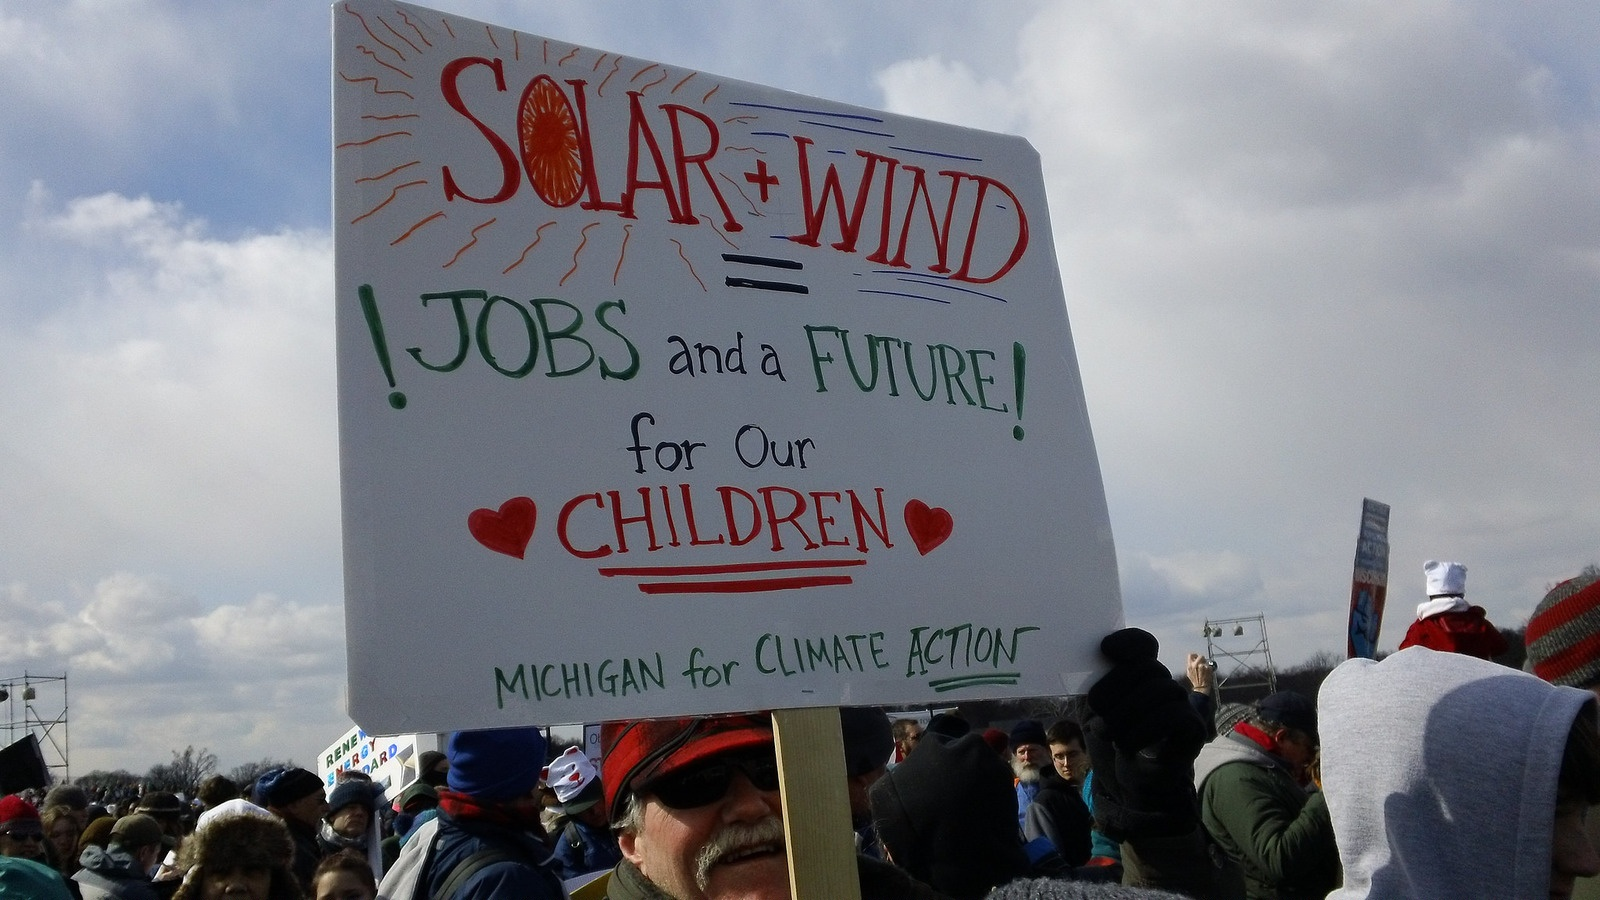 Photos from Today's Pro-Clean Energy, Anti-Keystone Tar Sands Pipeline Rally in Washington, DC